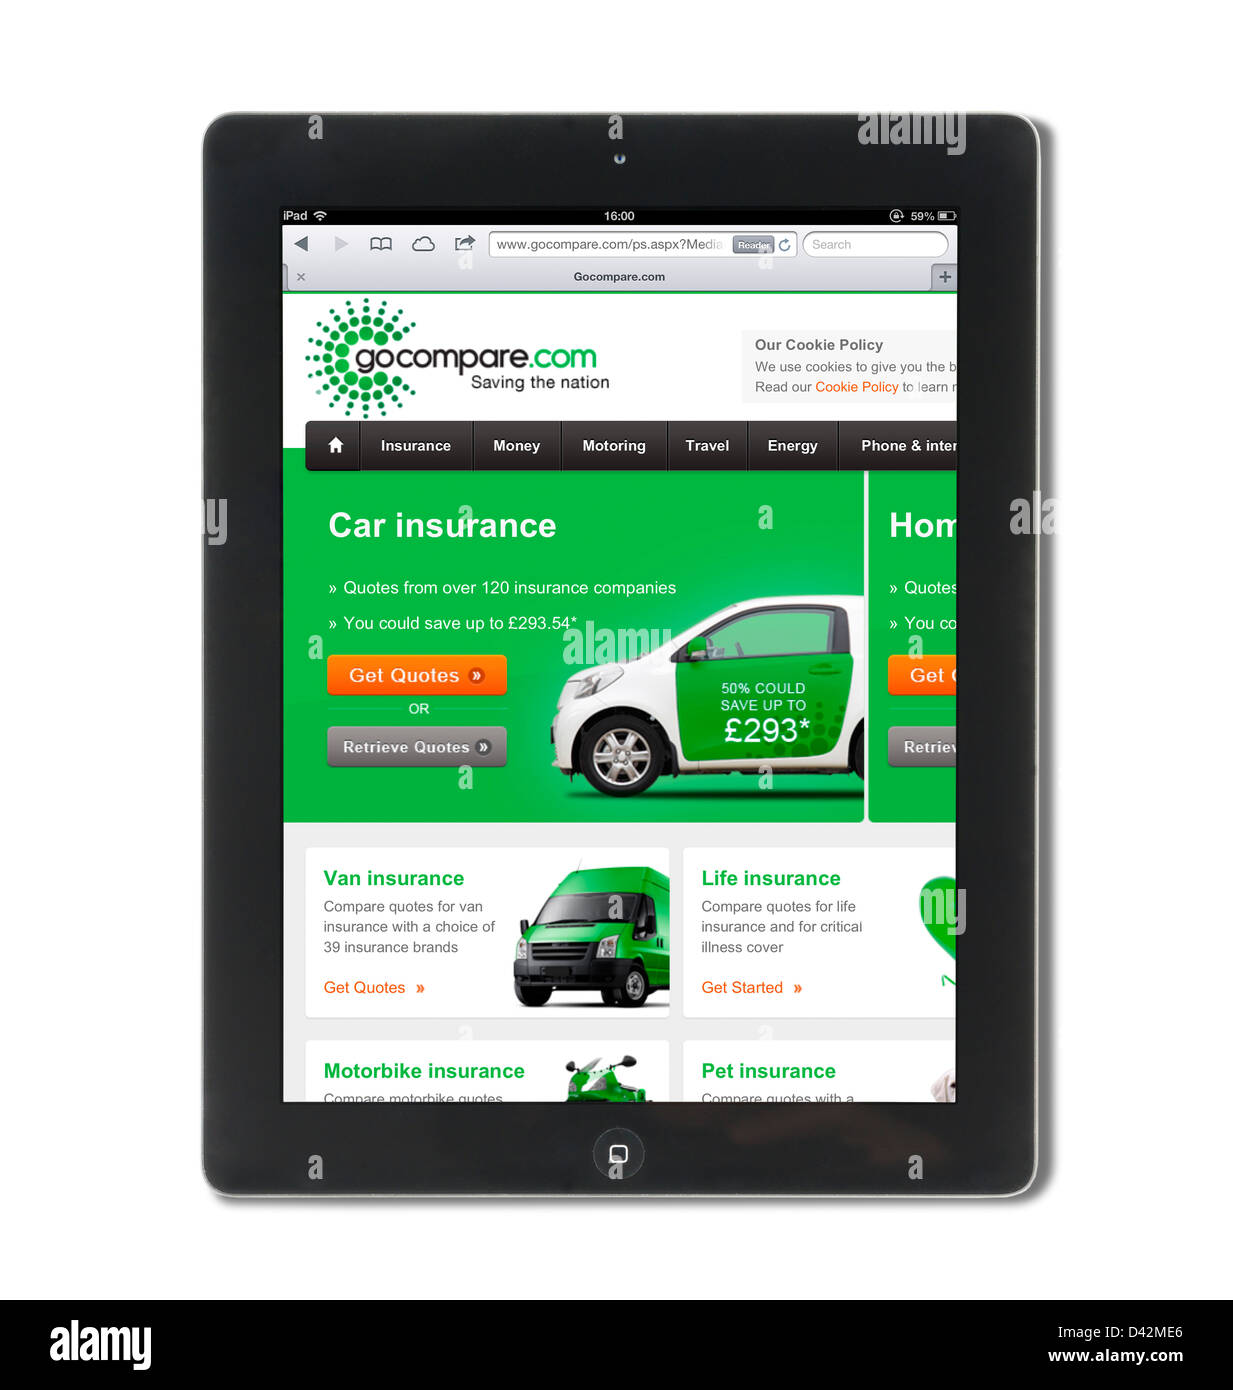 The Insurance Comparison Website Gocompare Com Com Viewed On An Ipad